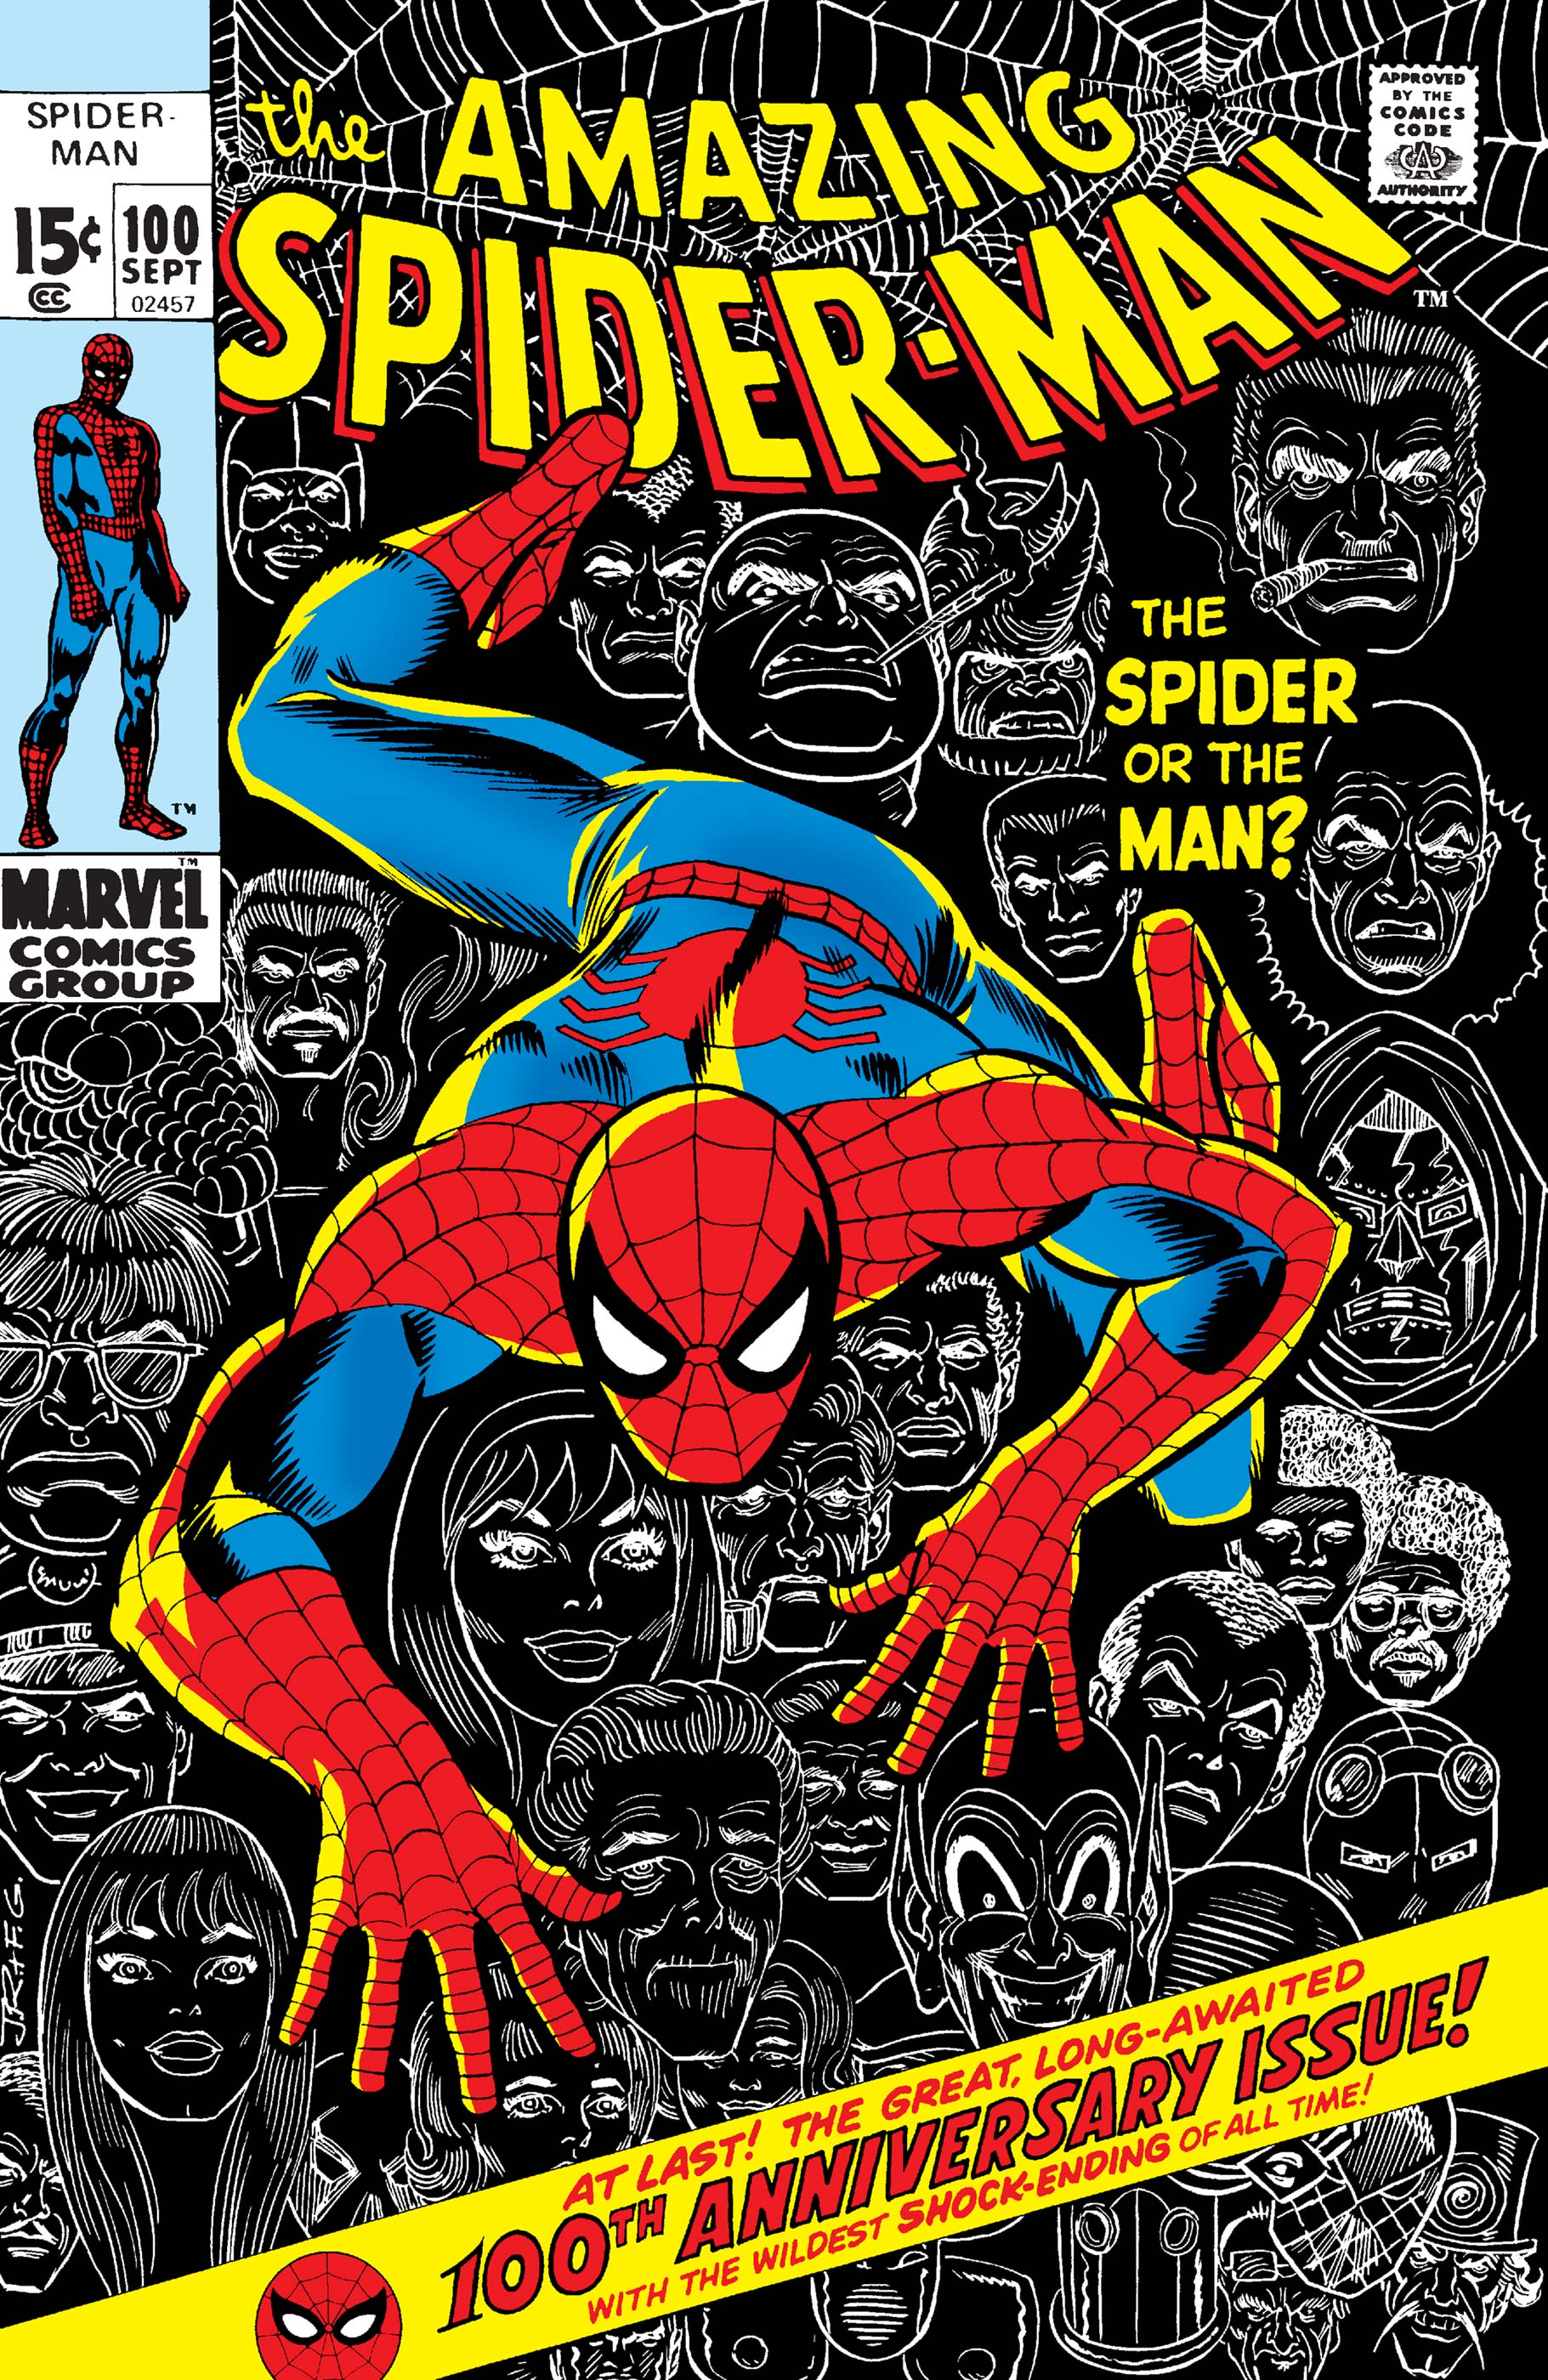 The Amazing Spider-Man (1963) #100